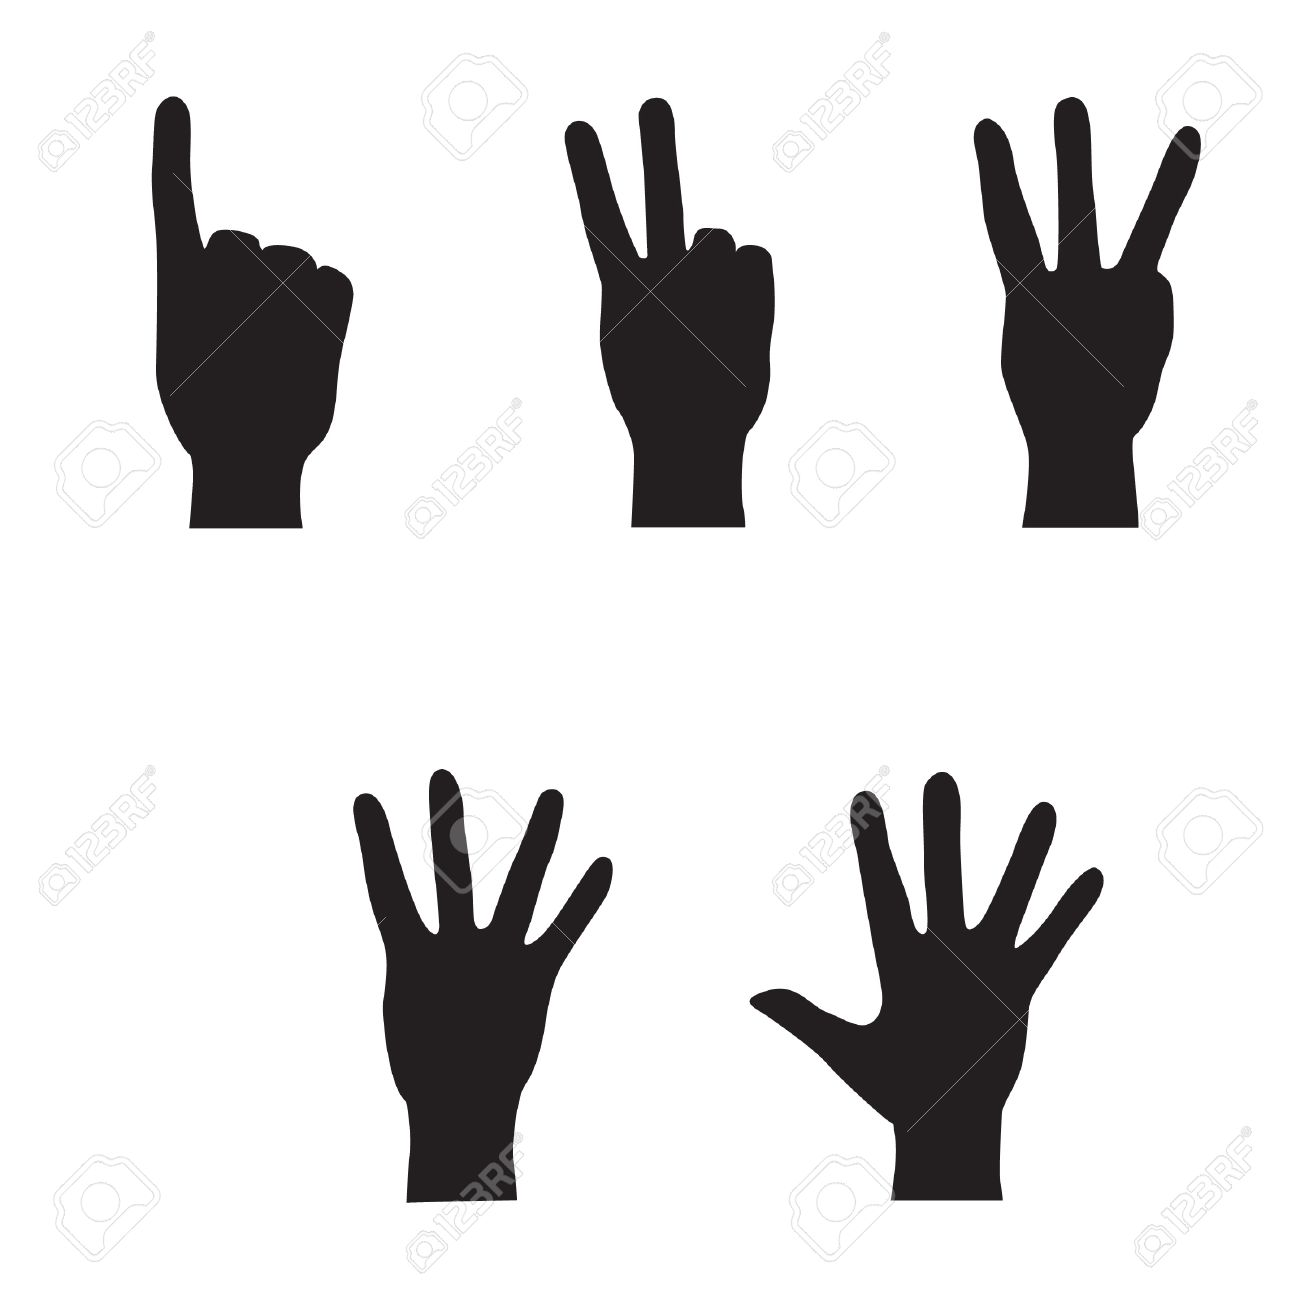 Hands - finger count collection  Vector gestures icons  Computer icon set Stock Vector - 17279135